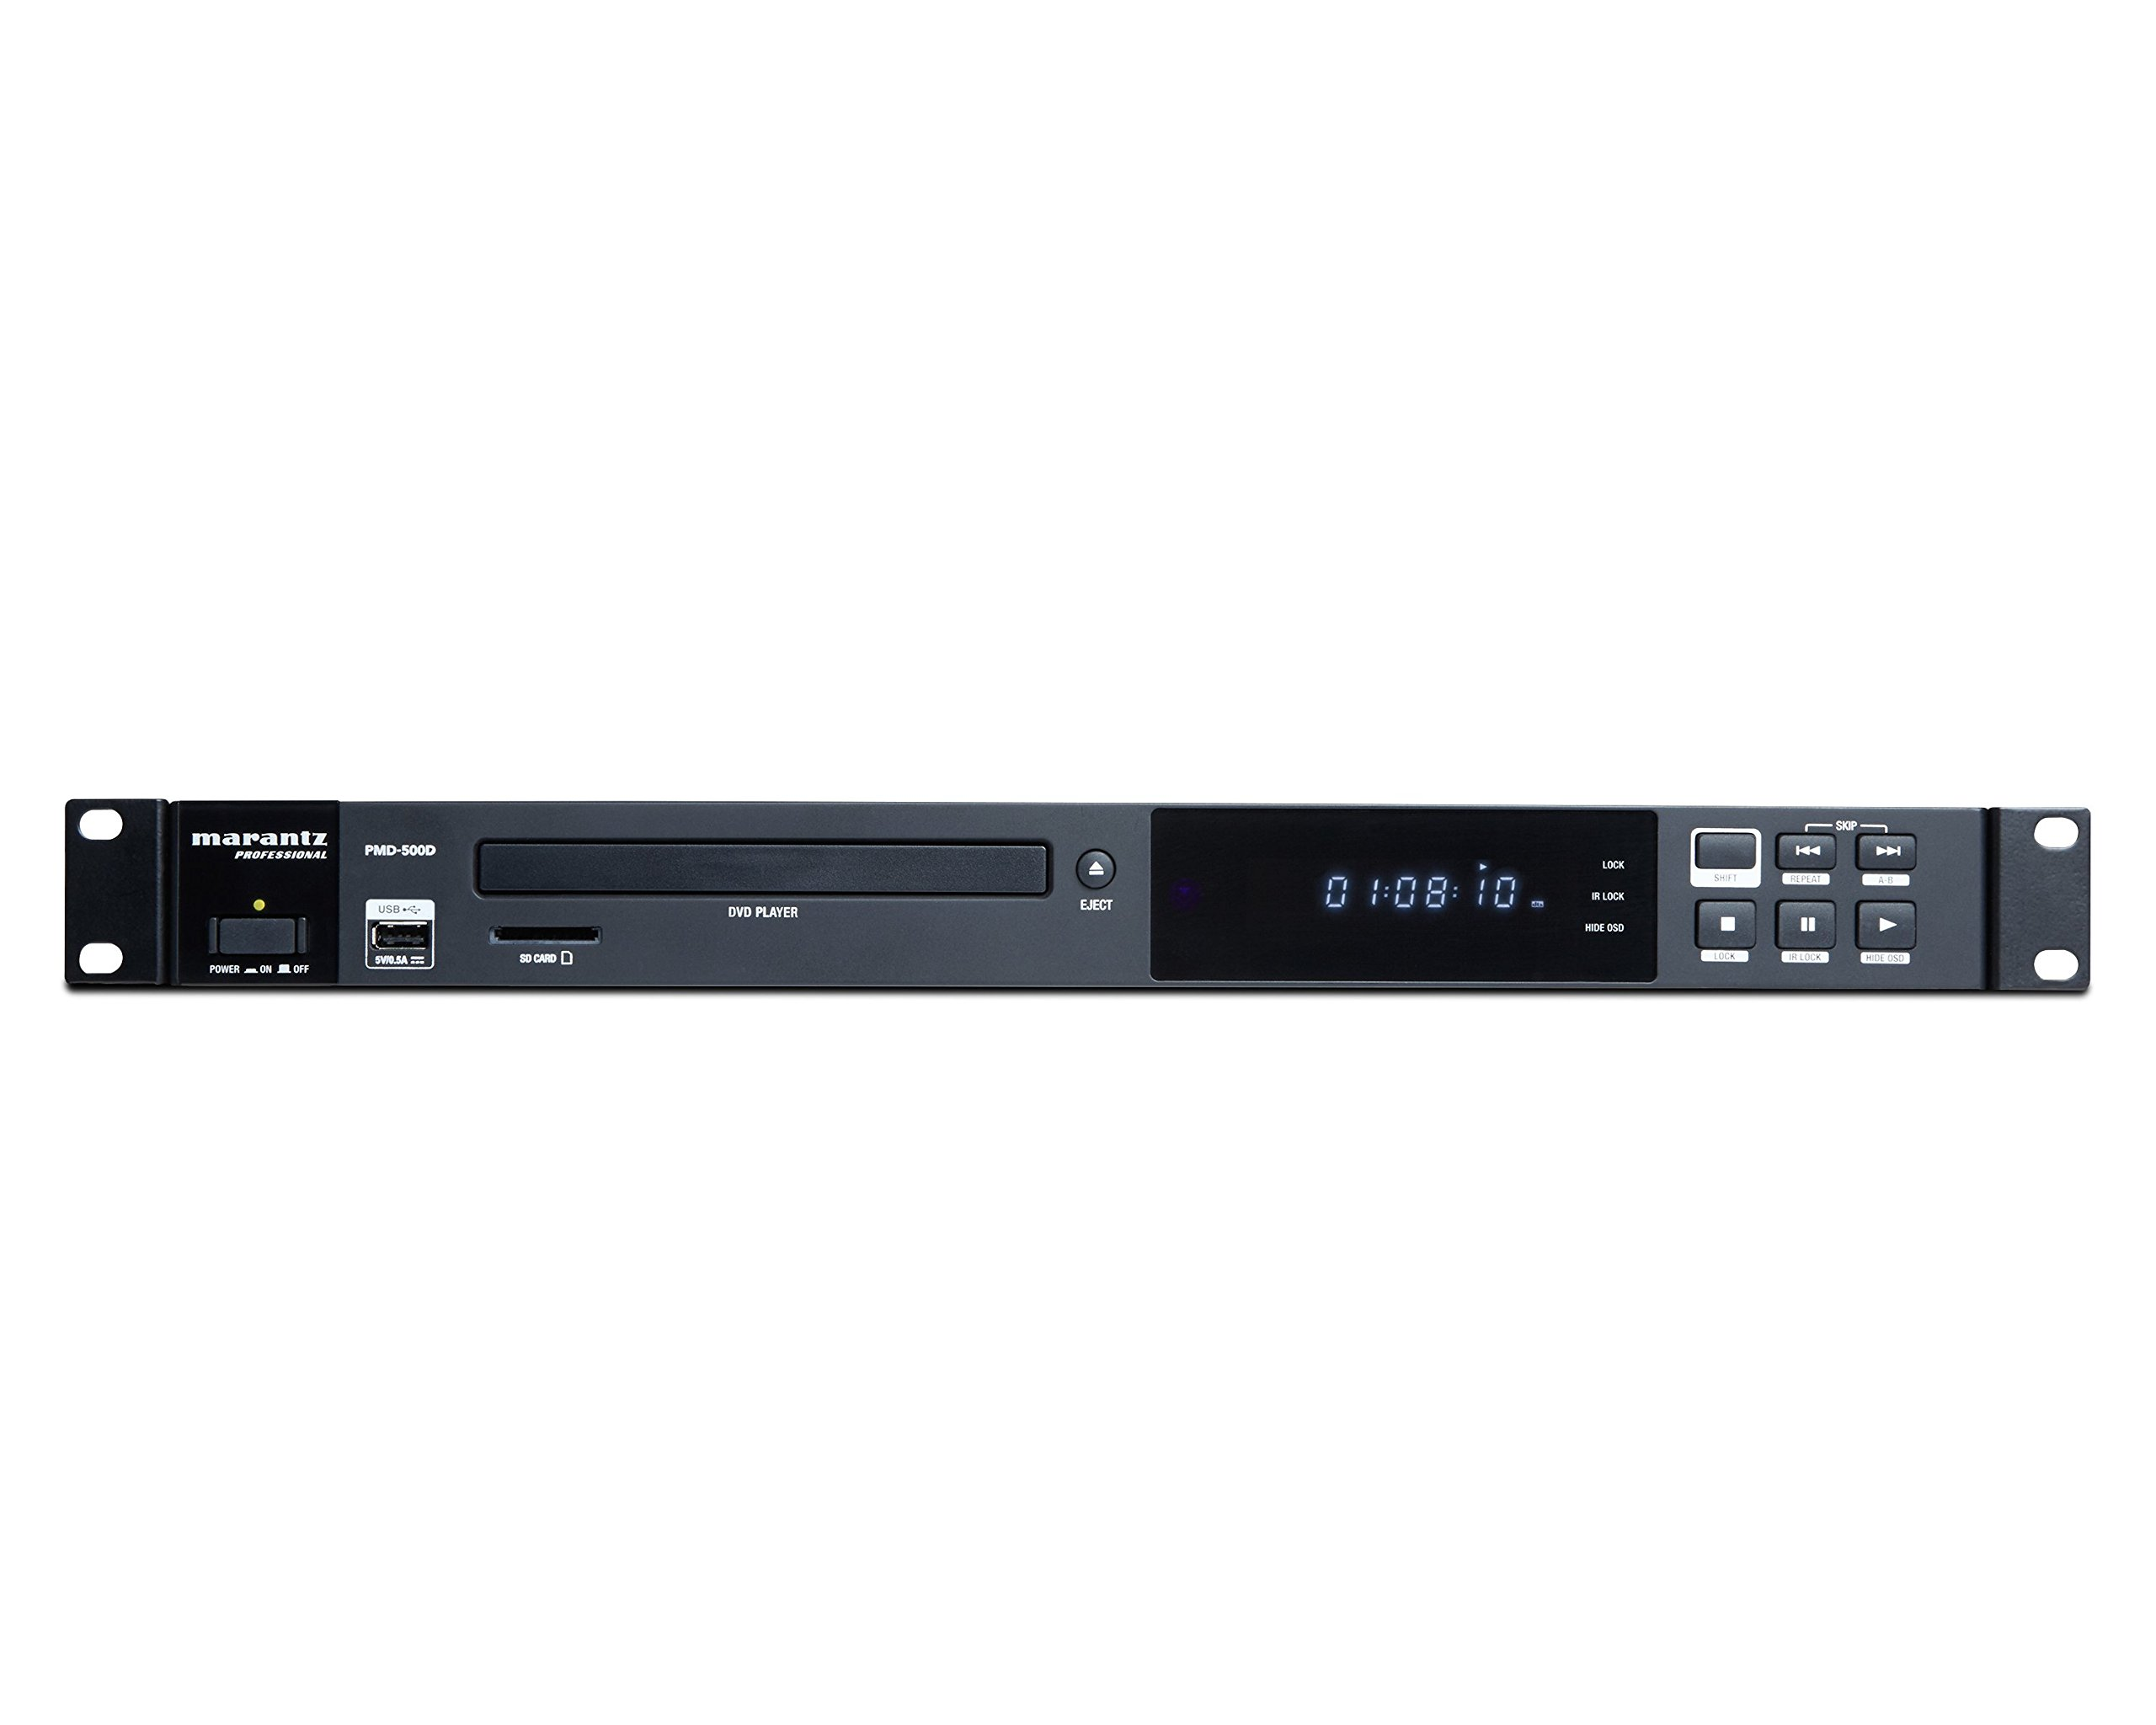 Marantz Professional PMD-500D | Commercial Media Player for DVD, SD/SDHC, and USB with Multi-Output Options by Marantz Professional